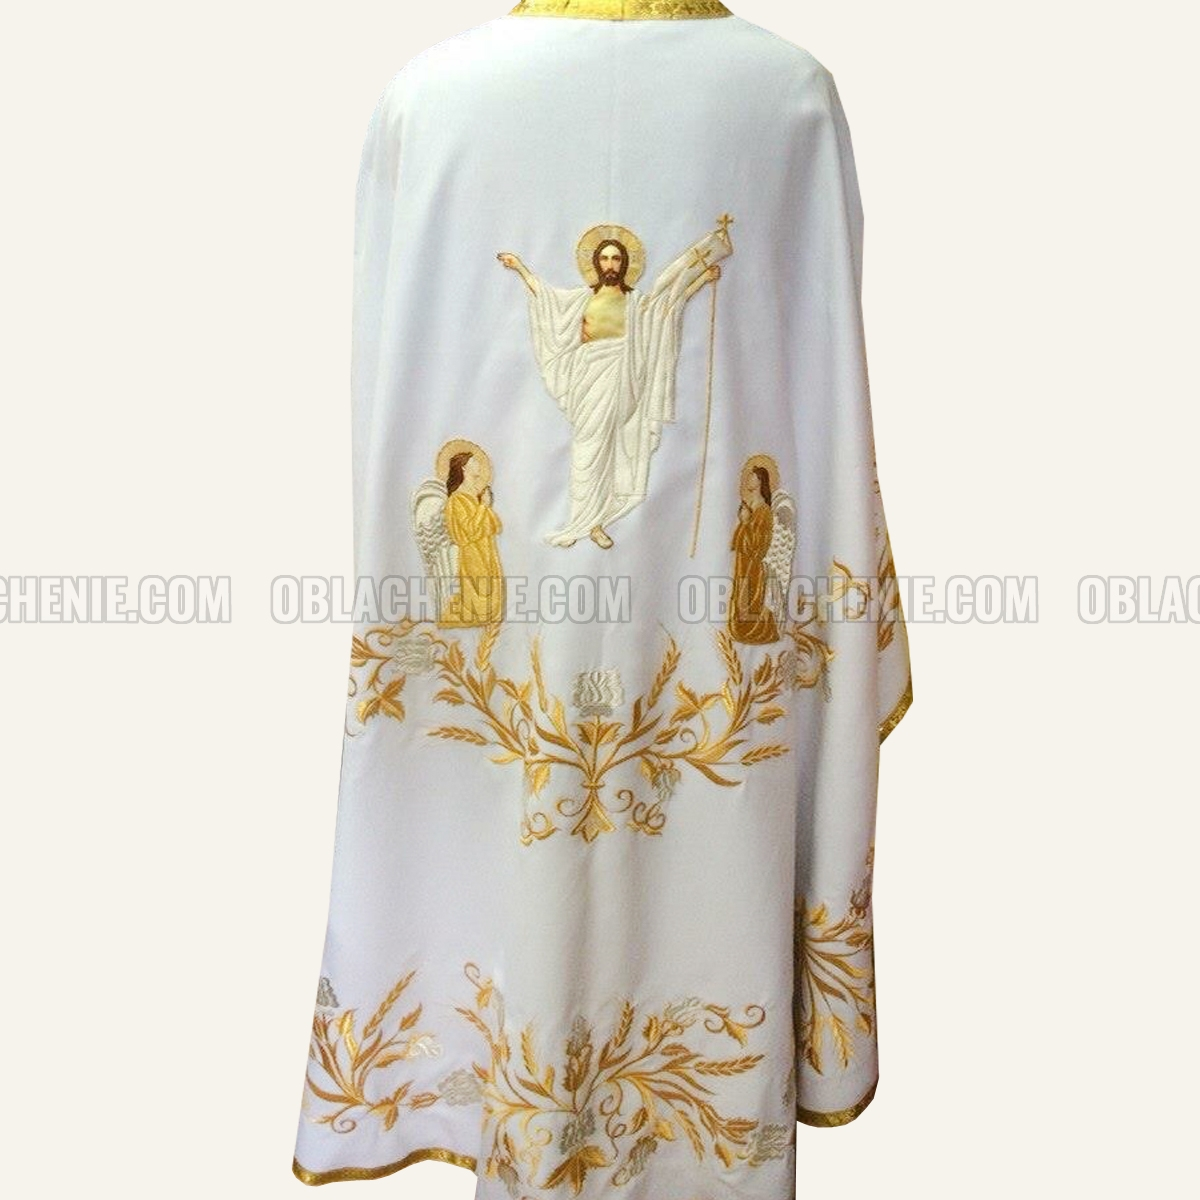 Embroidered priest's vestments 10263